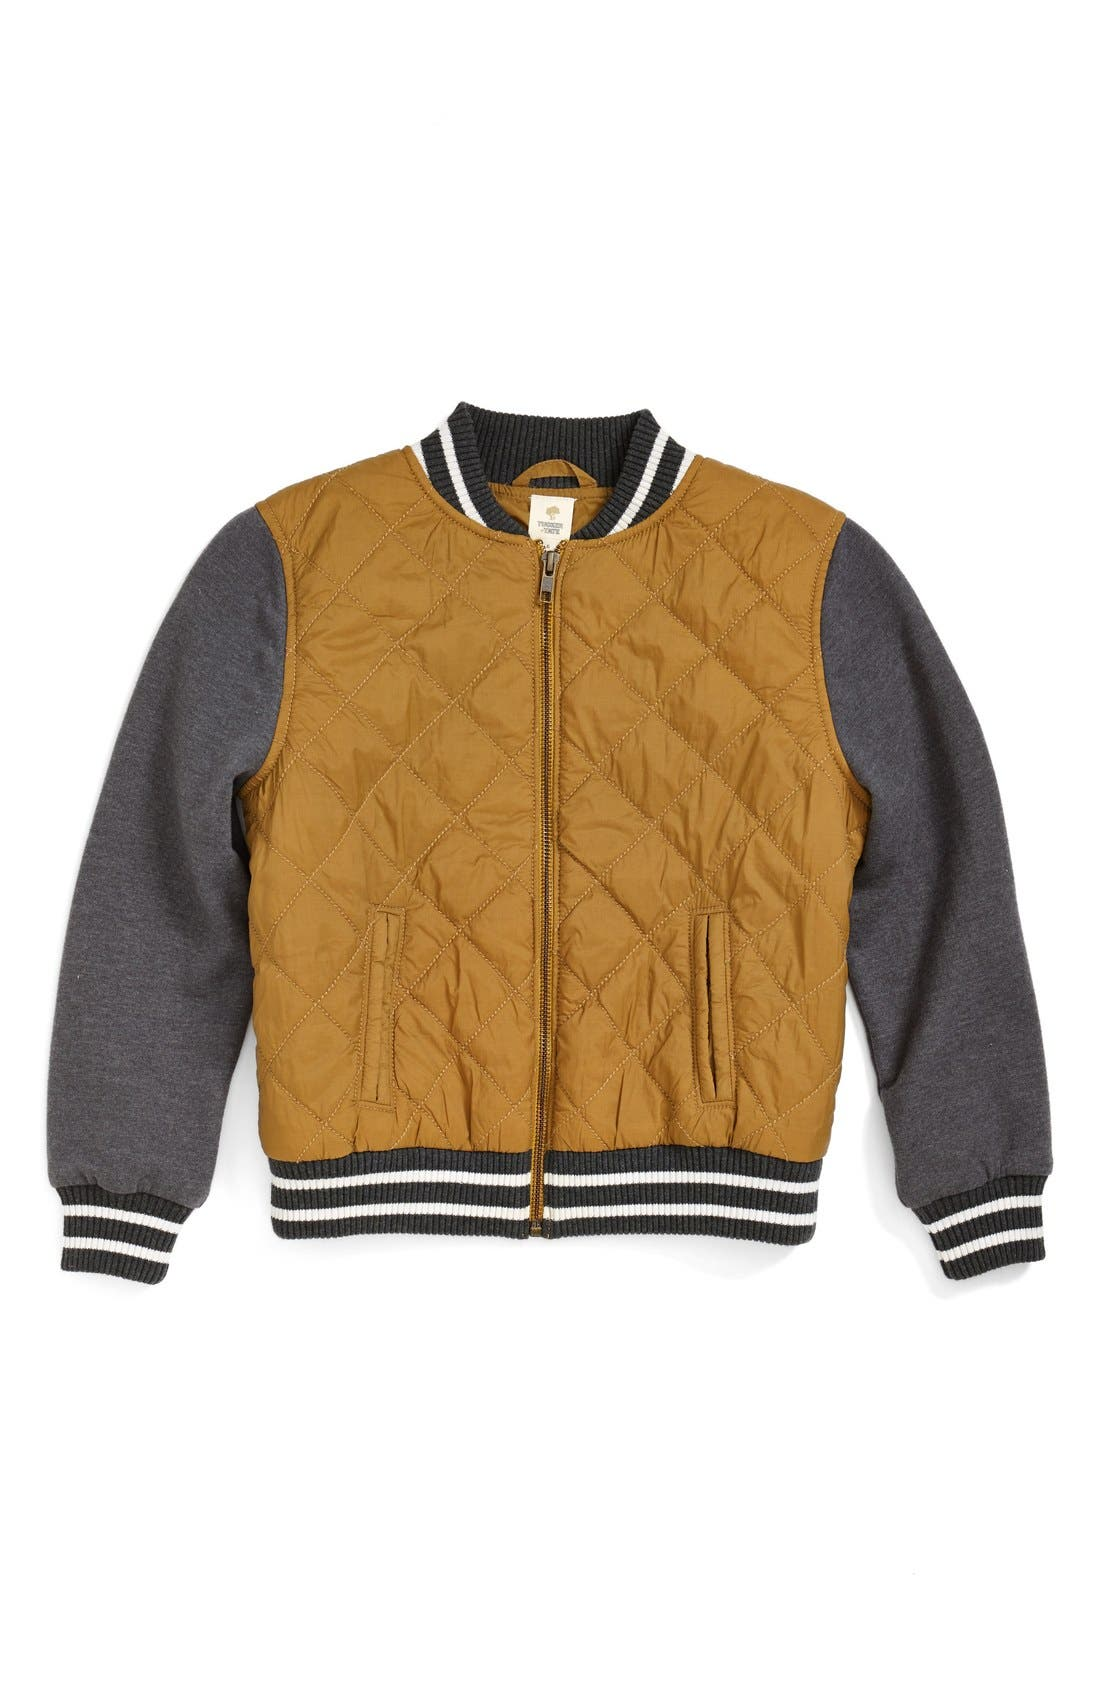 Alternate Image 1 Selected - Tucker + Tate 'Isaac' Quilted Bomber Jacket (Toddler Boys & Little Boys)